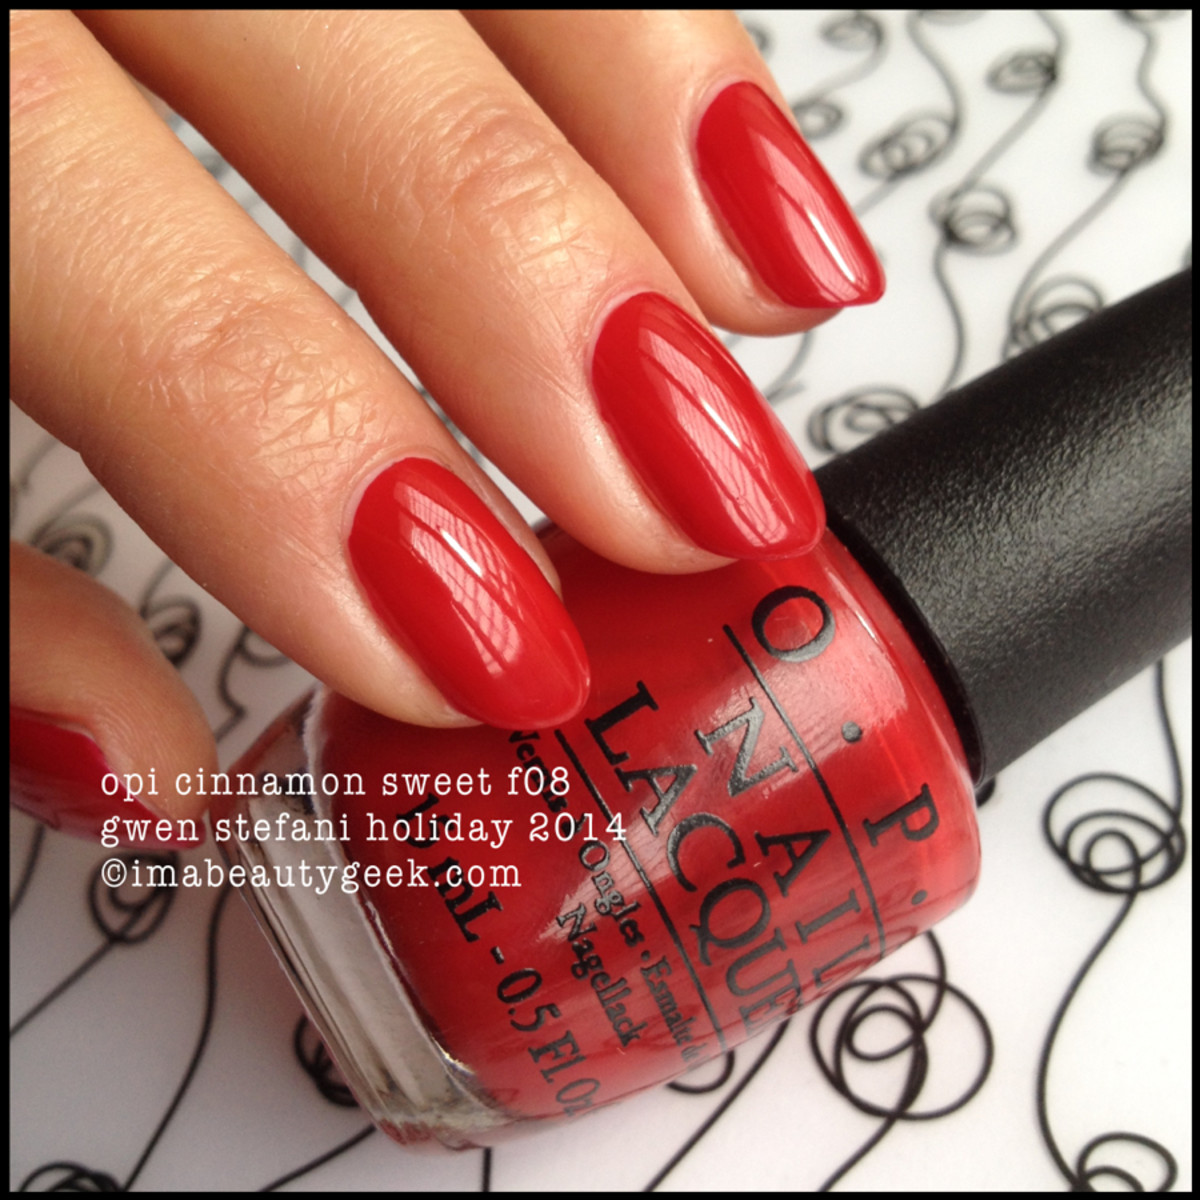 OPI Cinnamon Sweet f08 Gwen Stefani Holiday 2014